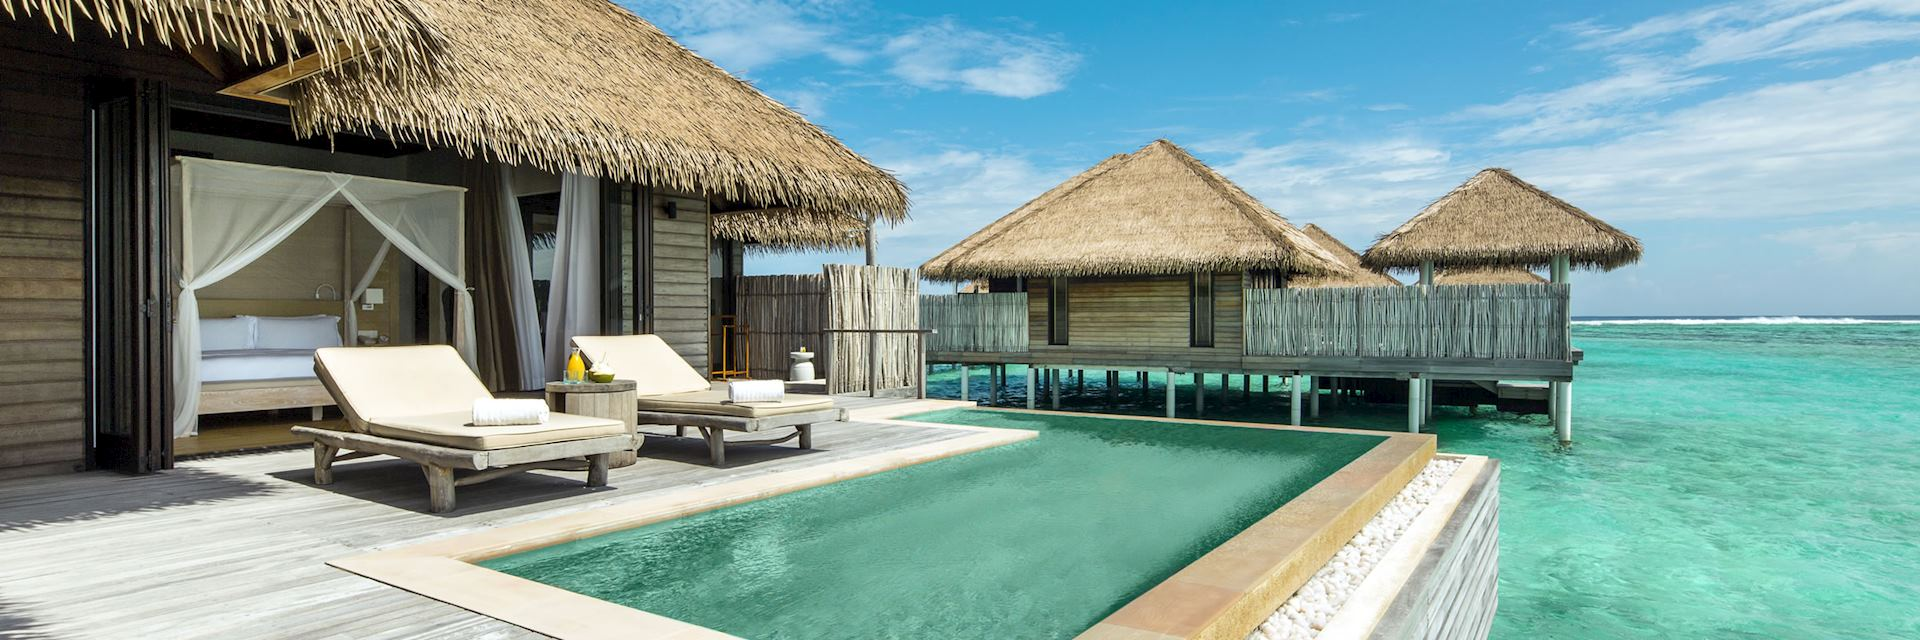 Water Villa at the Maalifushi